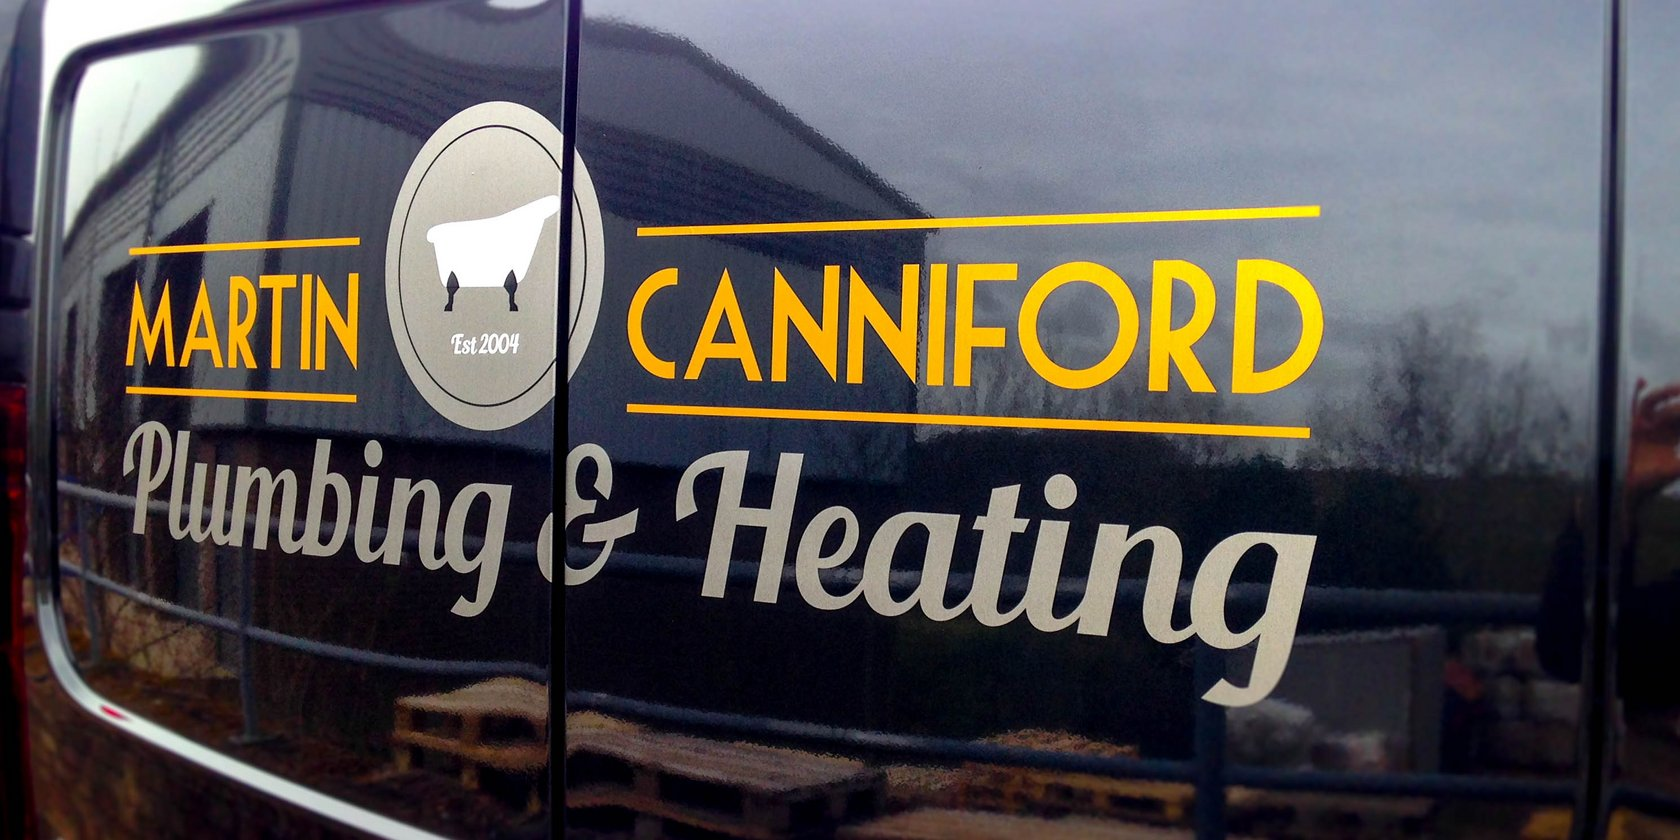 Martin Canniford Plumbing and Heating